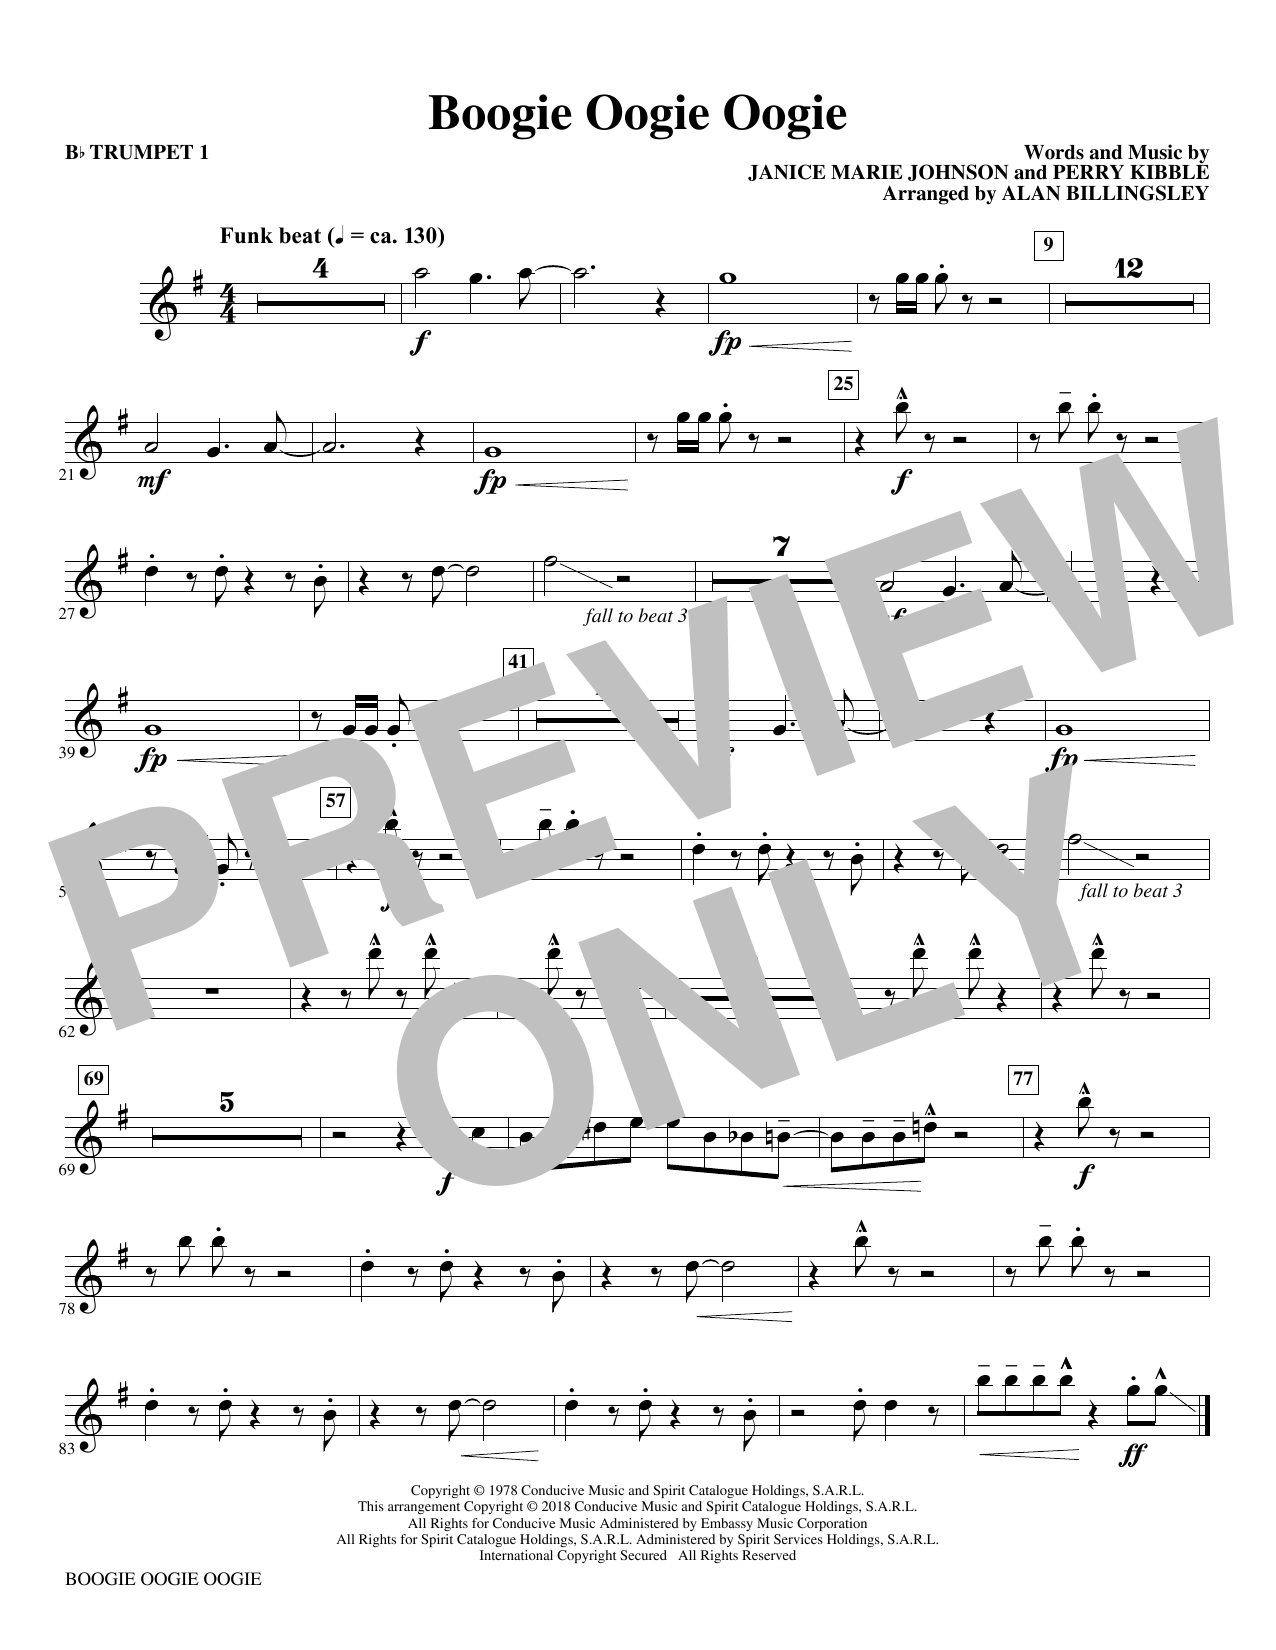 Download A Taste Of Honey 'Boogie Oogie Oogie (arr. Alan Billingsley) - Bb Trumpet 1' Digital Sheet Music Notes & Chords and start playing in minutes